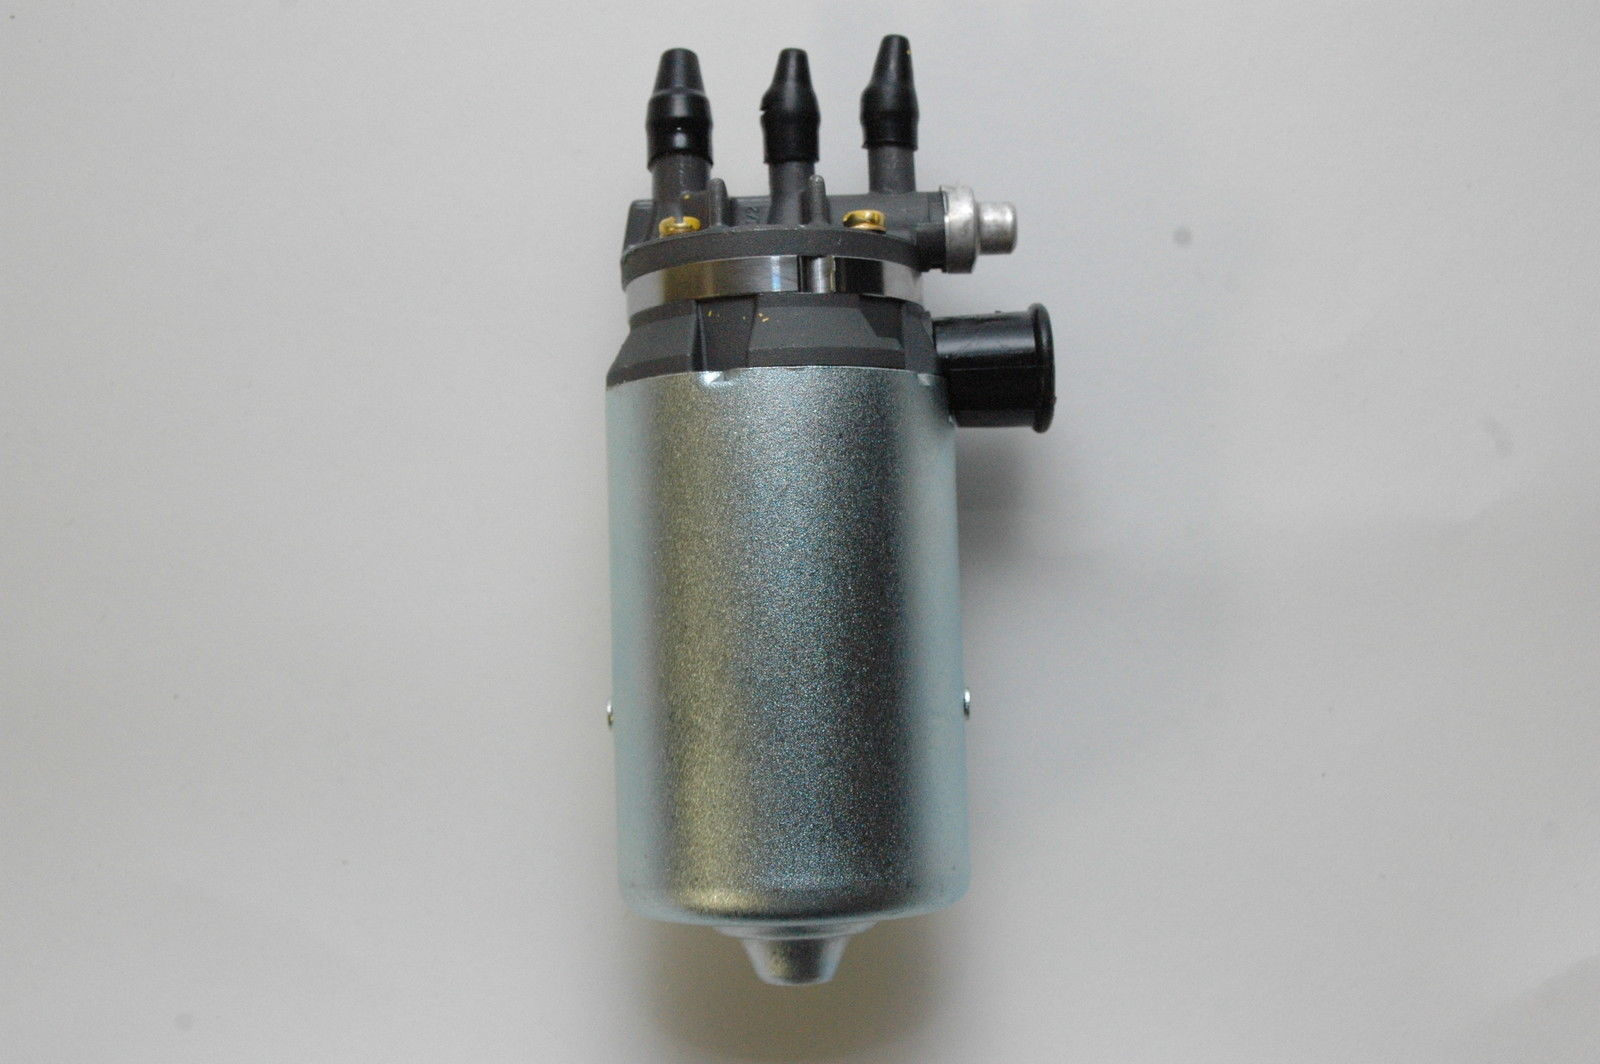 Carb Fuel Alfa Romeo Parts Car Bendix Filters 911t Pump For Carbureted Cars 1970 73 91160810700